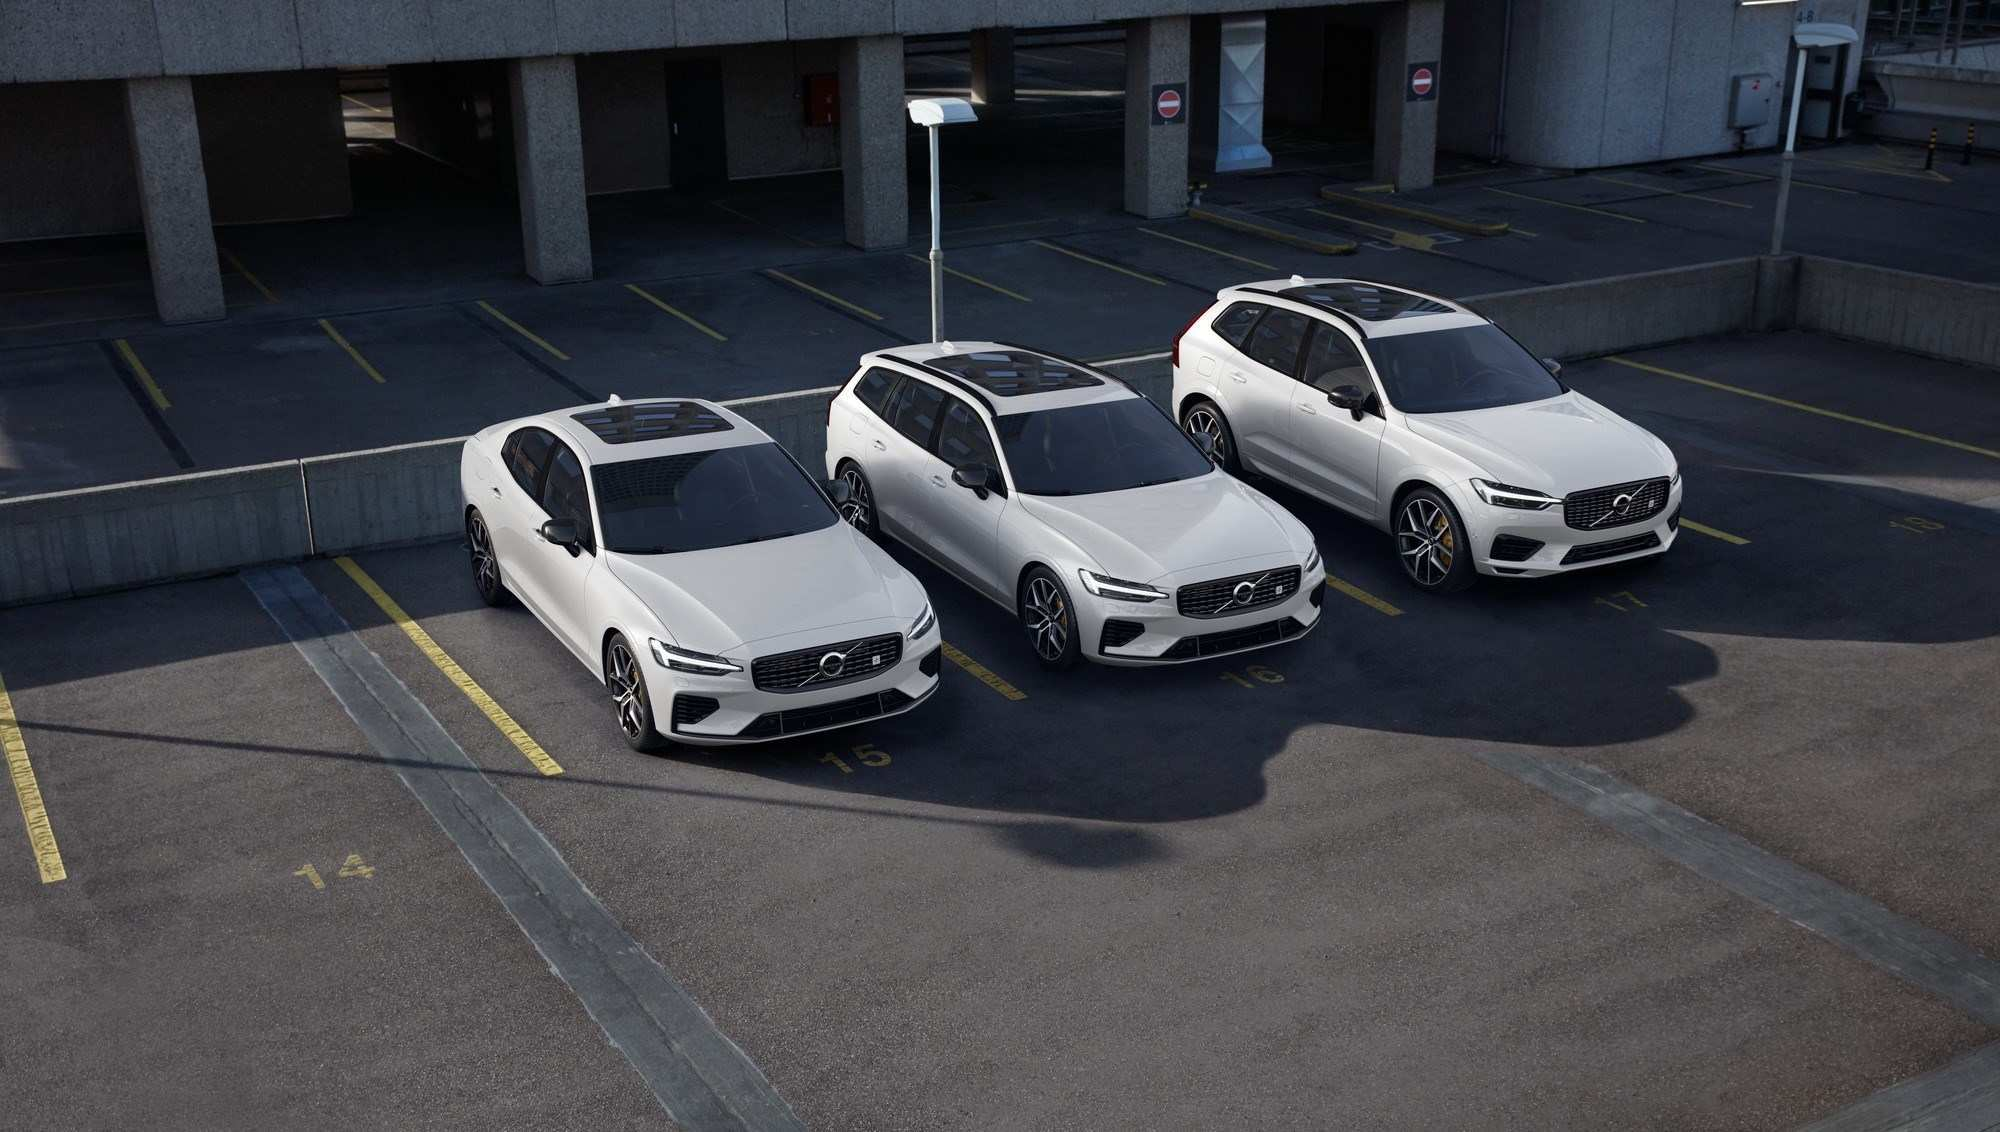 51 Best Review When Do 2020 Volvo Xc60 Come Out History for When Do 2020 Volvo Xc60 Come Out